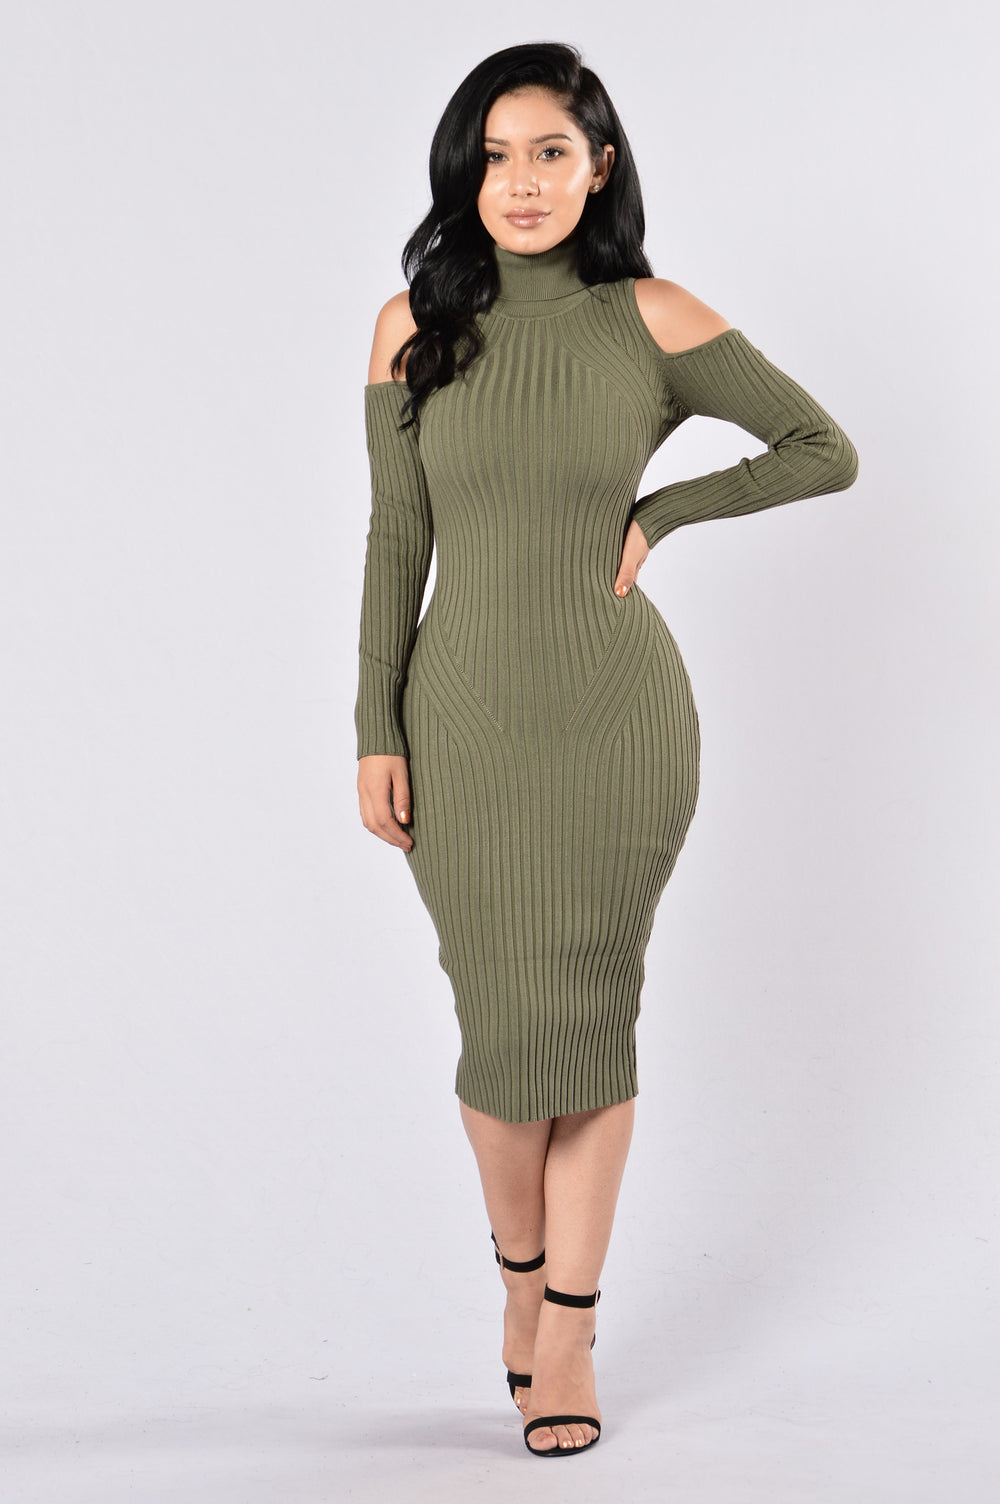 Second Date Dress - Olive